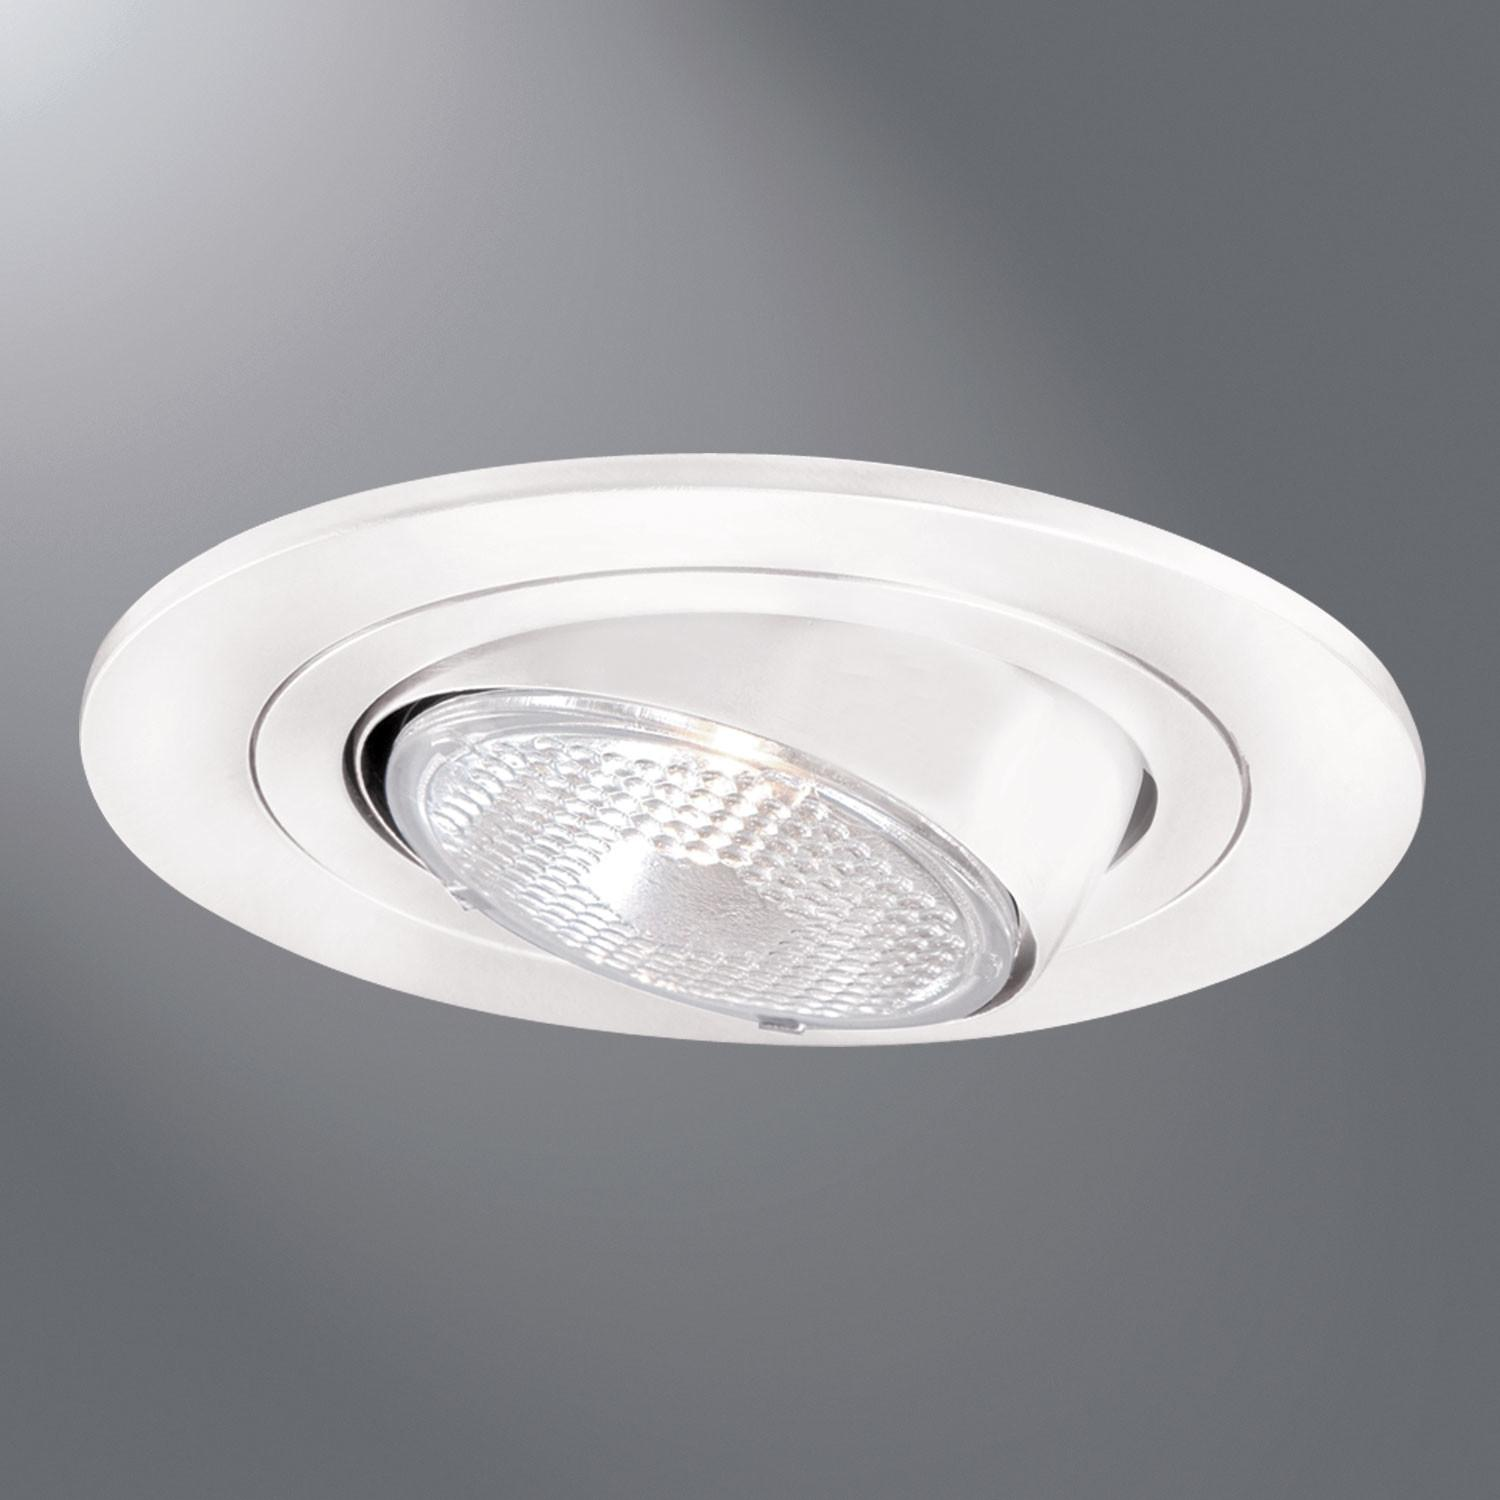 Lighting Design Halo Recessed Layout Led